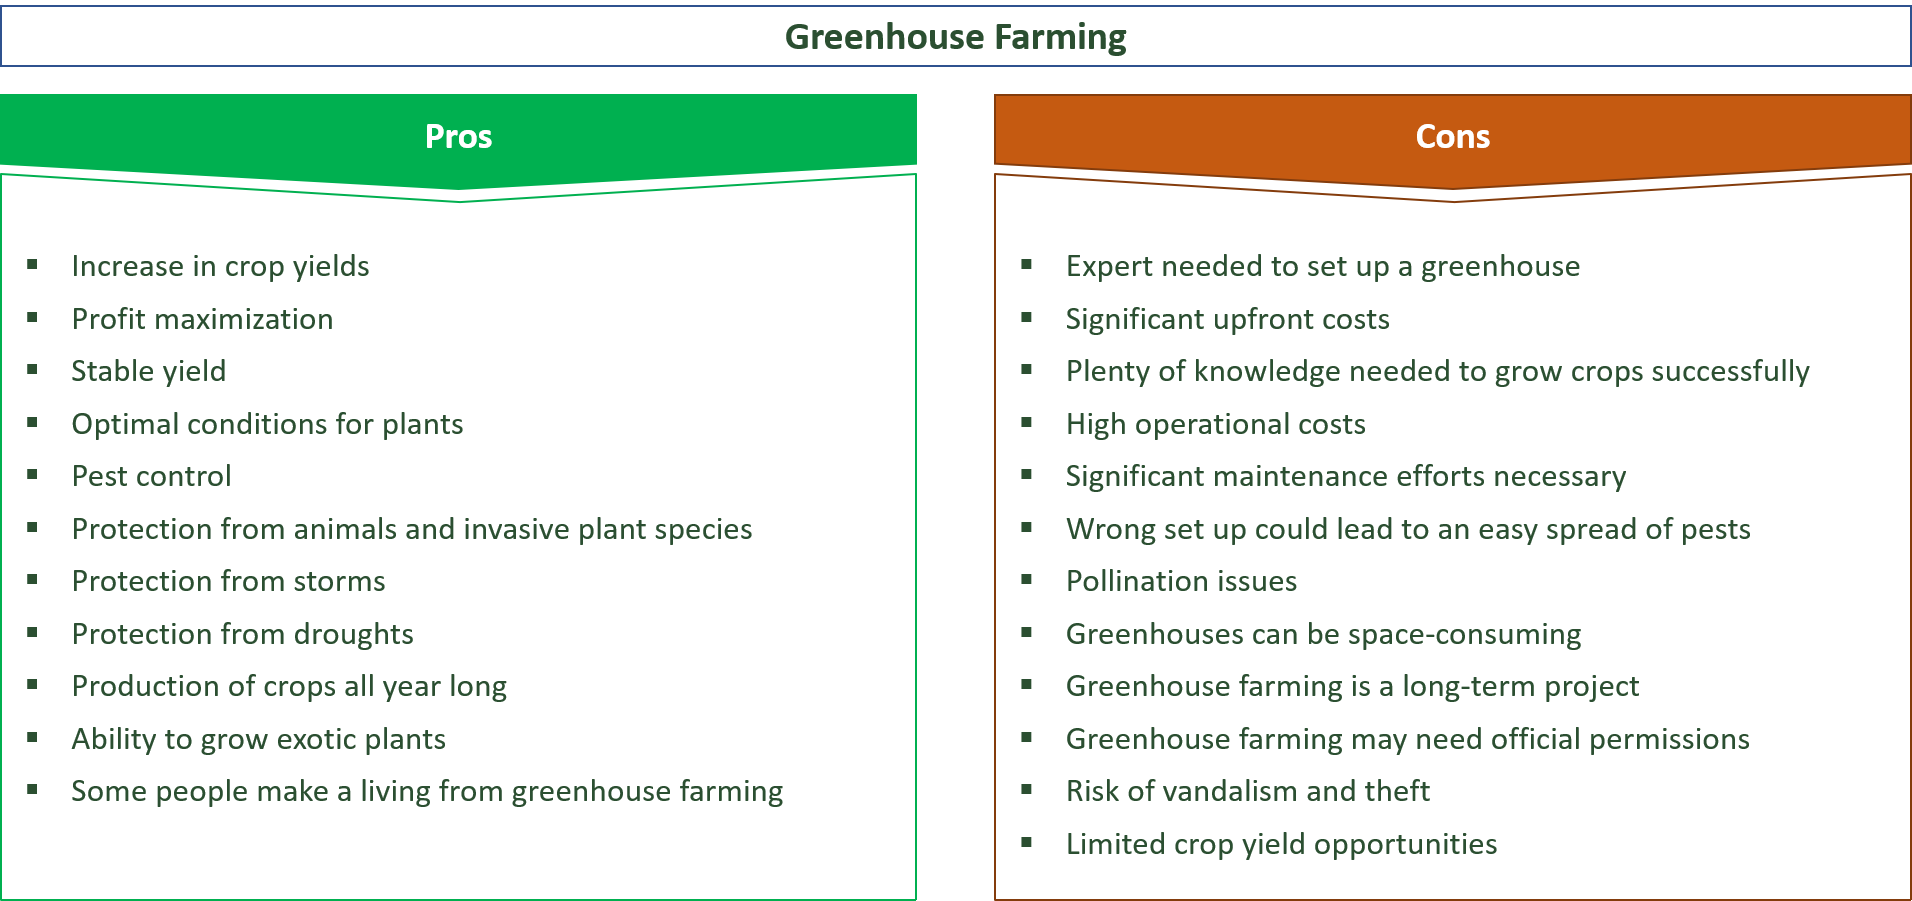 advantages and disadvantages of greenhouses